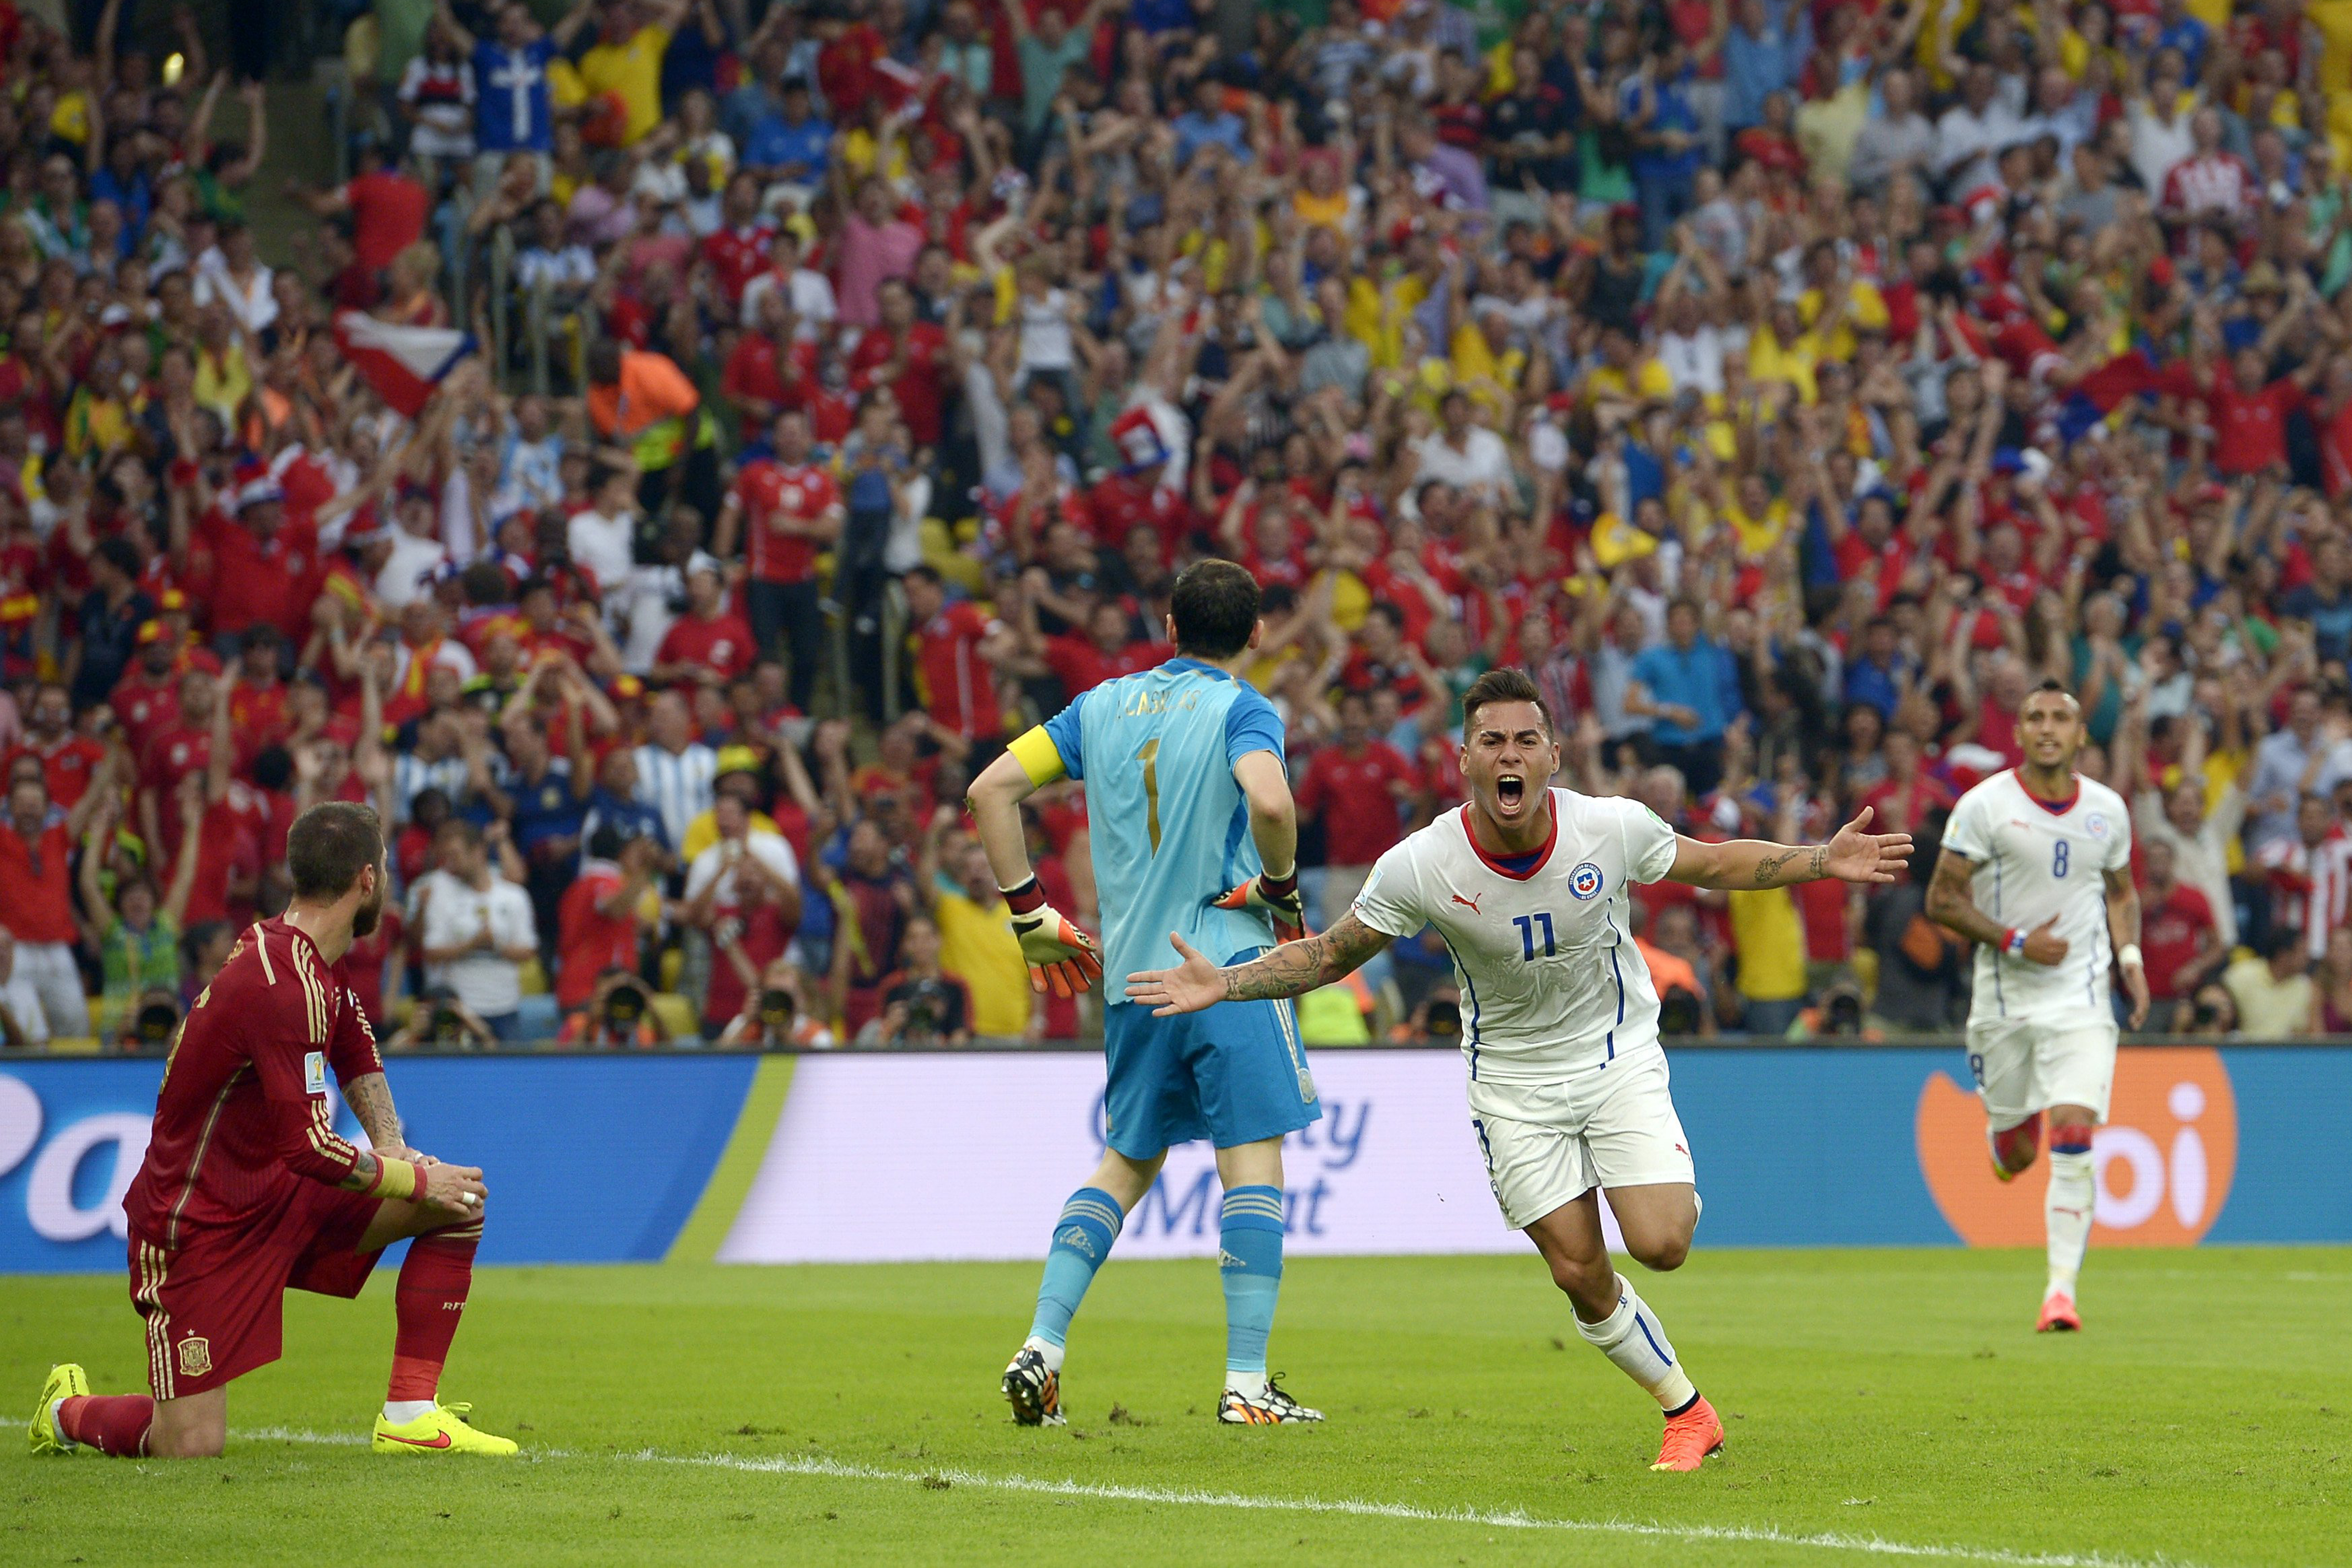 Chile's Eduardo Vargas celebrates after scoring the opening goal during the group B World Cup soccer match between Spain and Chile at the Maracana Stadium in Rio de Janeiro on June 18, 2014.